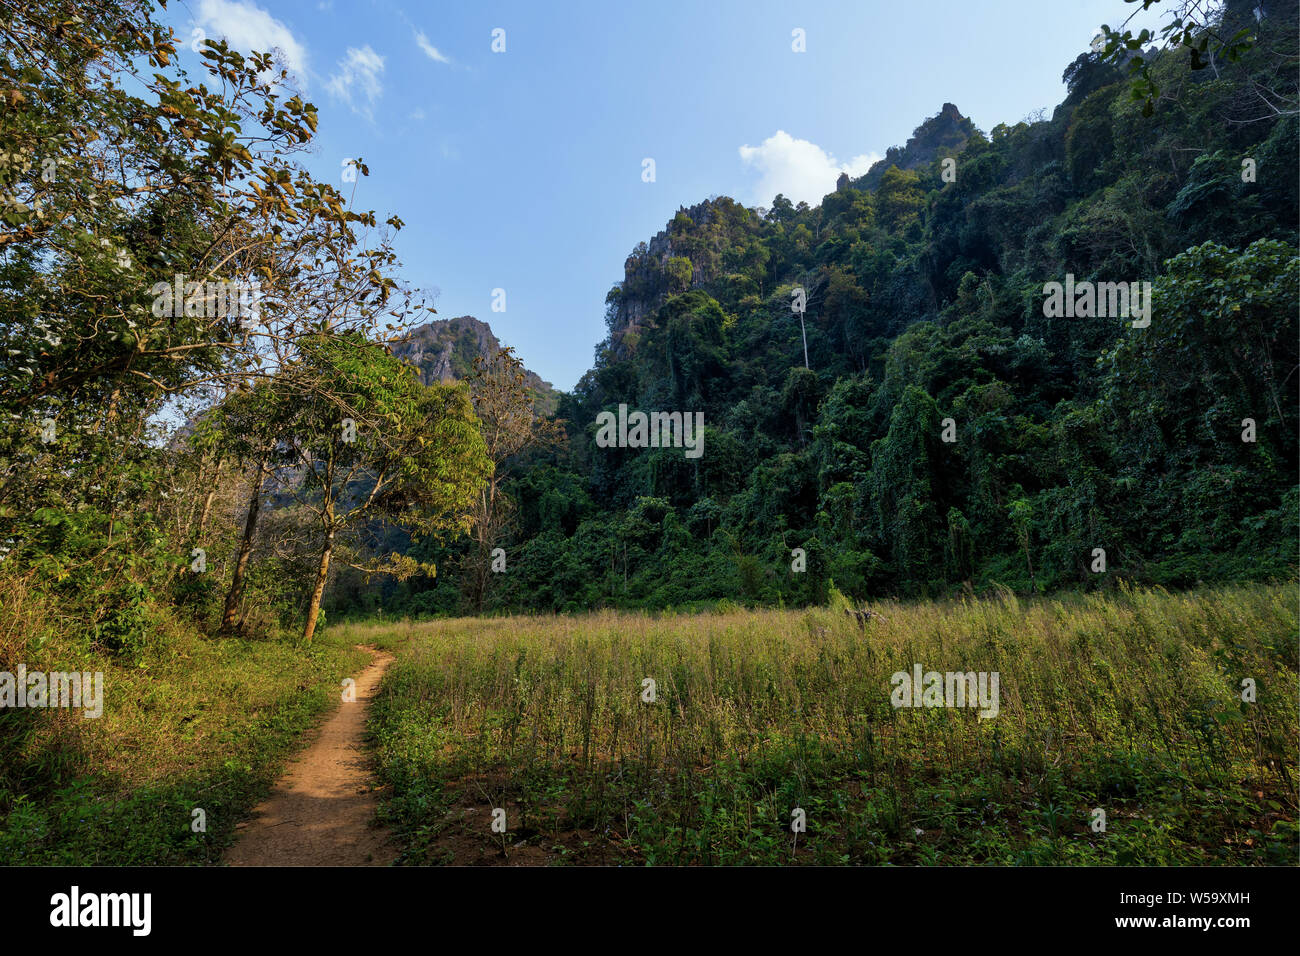 Scenic view of a lush nature, limestone mountains and hills - Off the beaten path near Vang Vieng, Vientiane Province, Laos, on a sunny day. Stock Photo